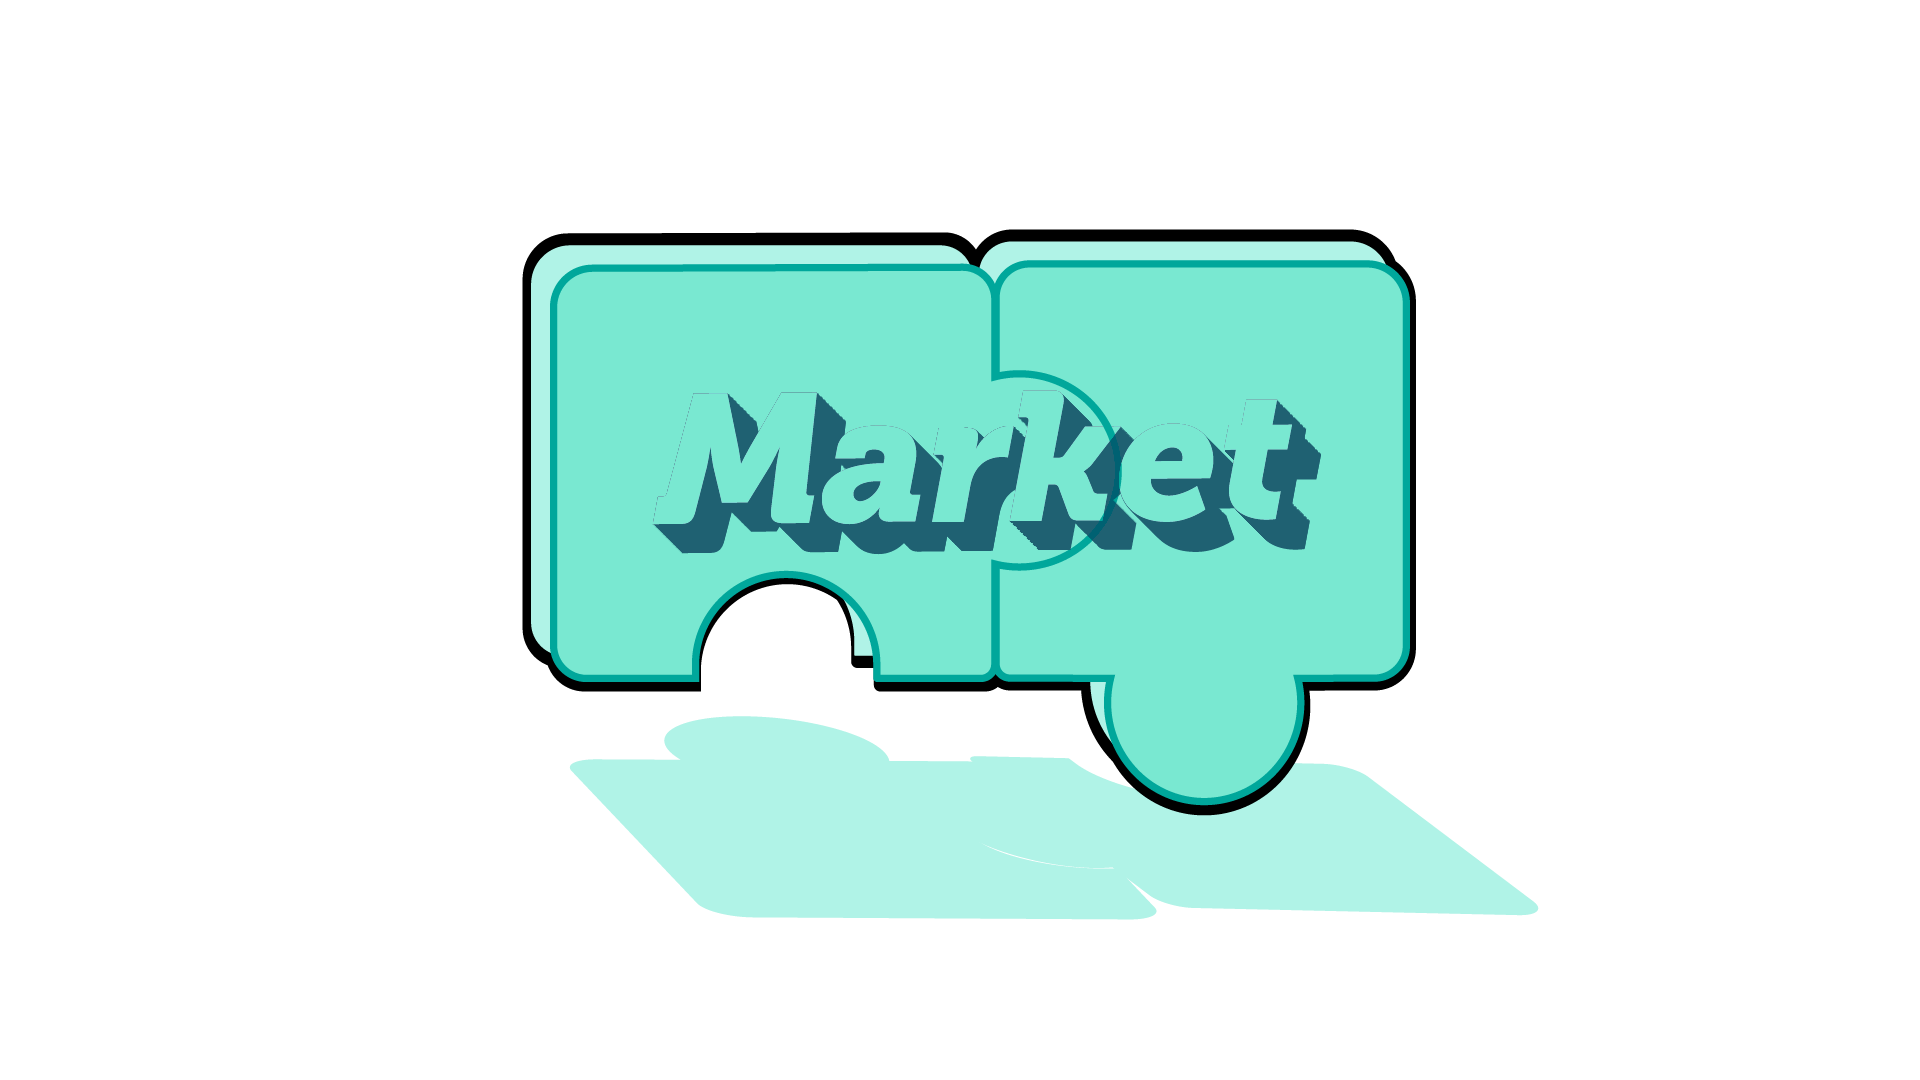 IMAGE: Connections puzzle pieces fitting together to spell the word 'Market'